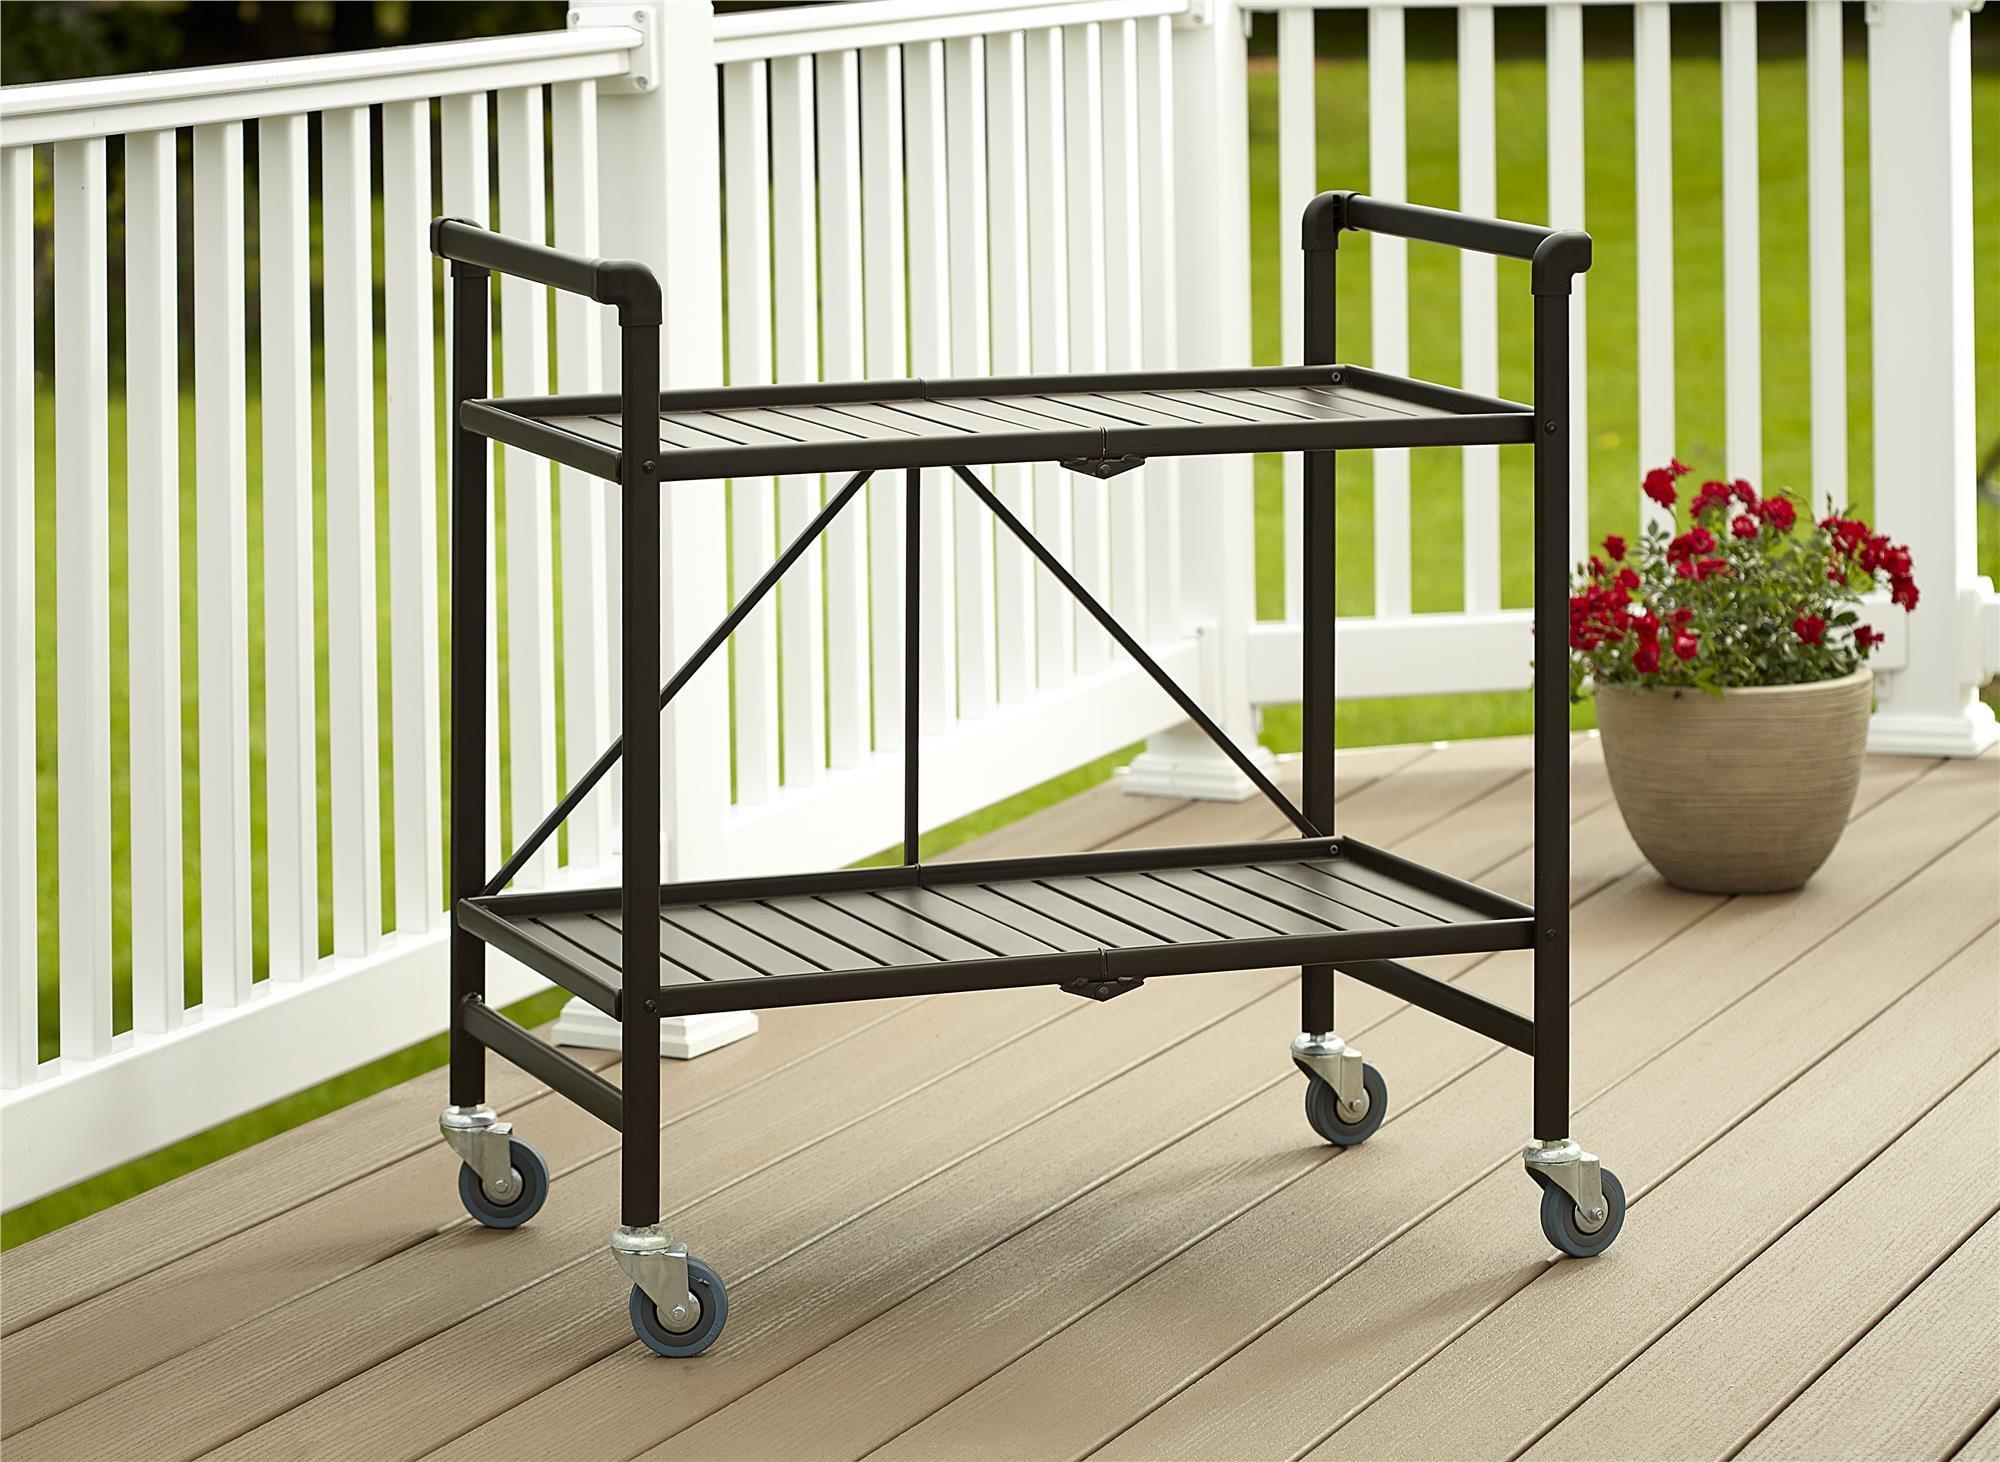 Cosco Indoor/Outdoor Serving Cart, Folding, Brown by Cosco